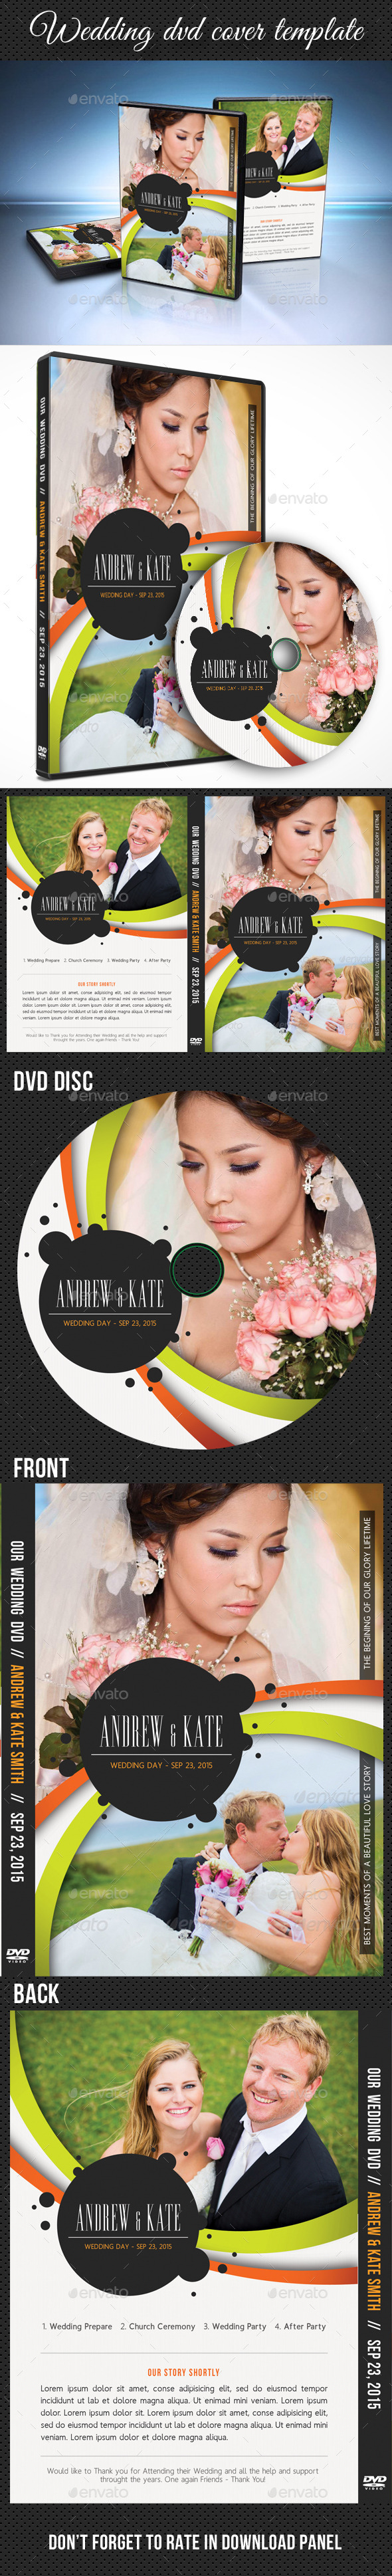 Wedding DVD Cover Template 14 - CD & DVD Artwork Print Templates